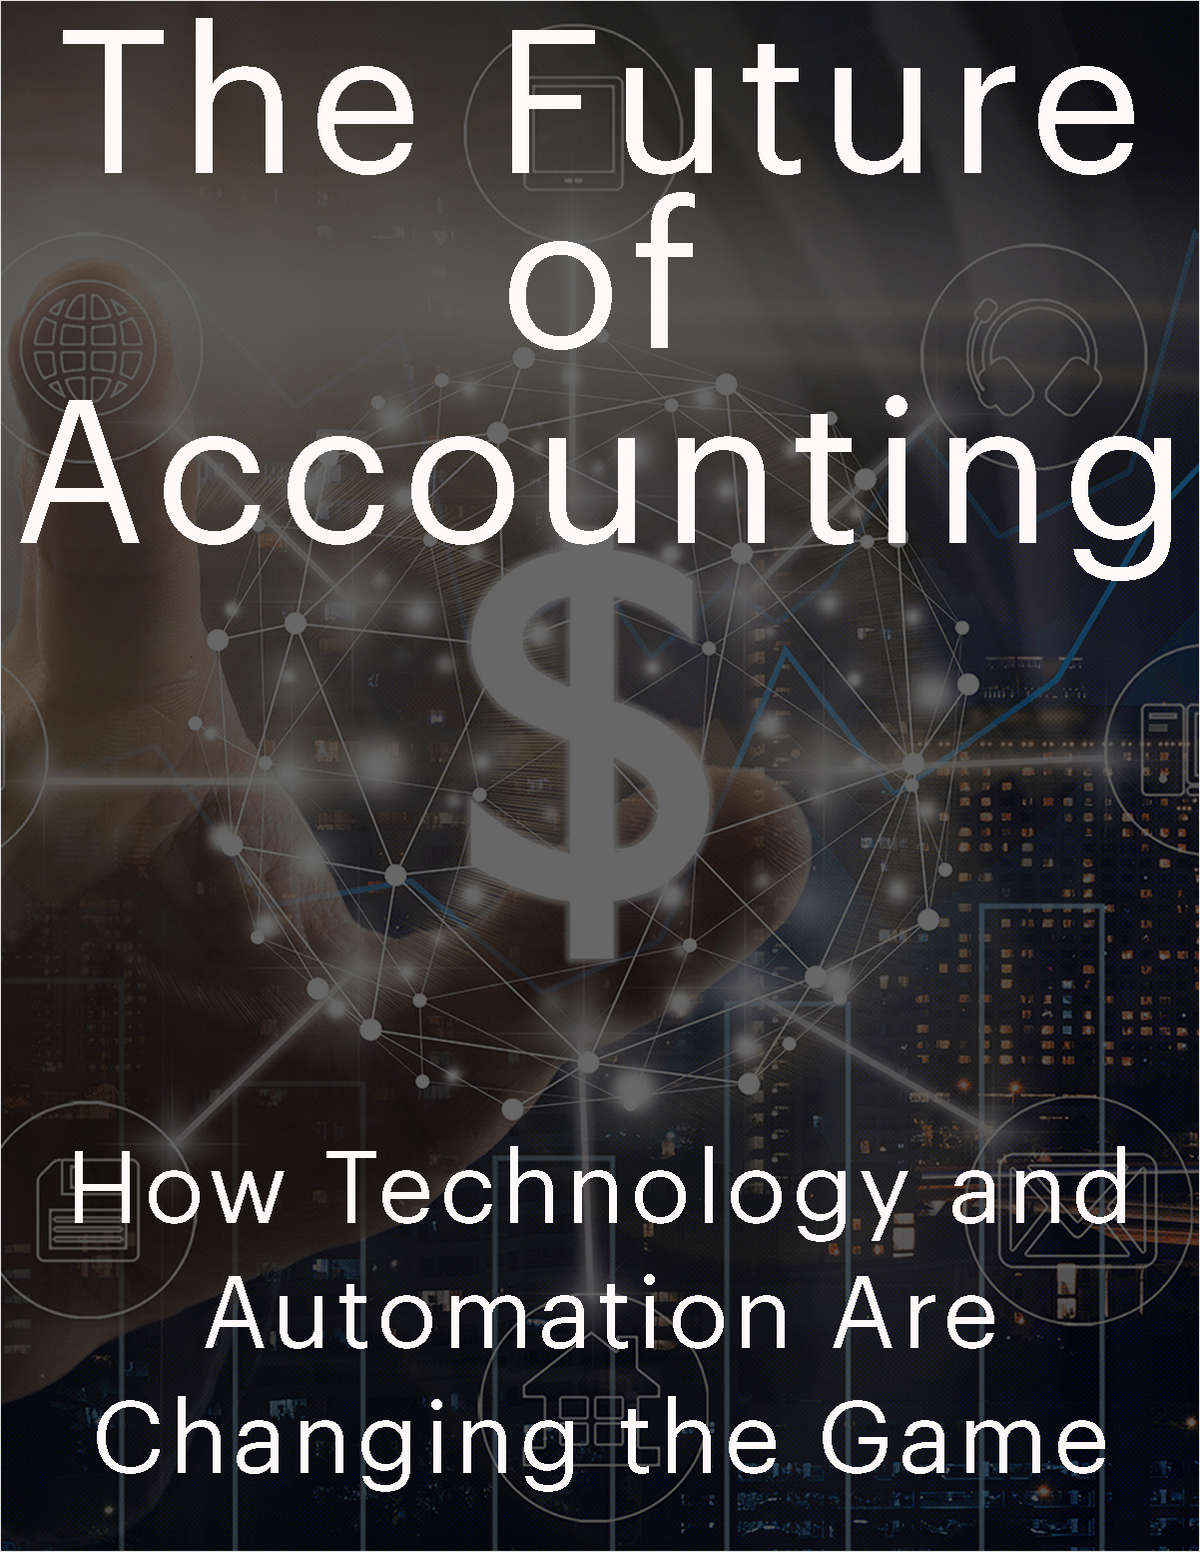 The Future of Accounting: How Technology and Automation Are Changing the Game